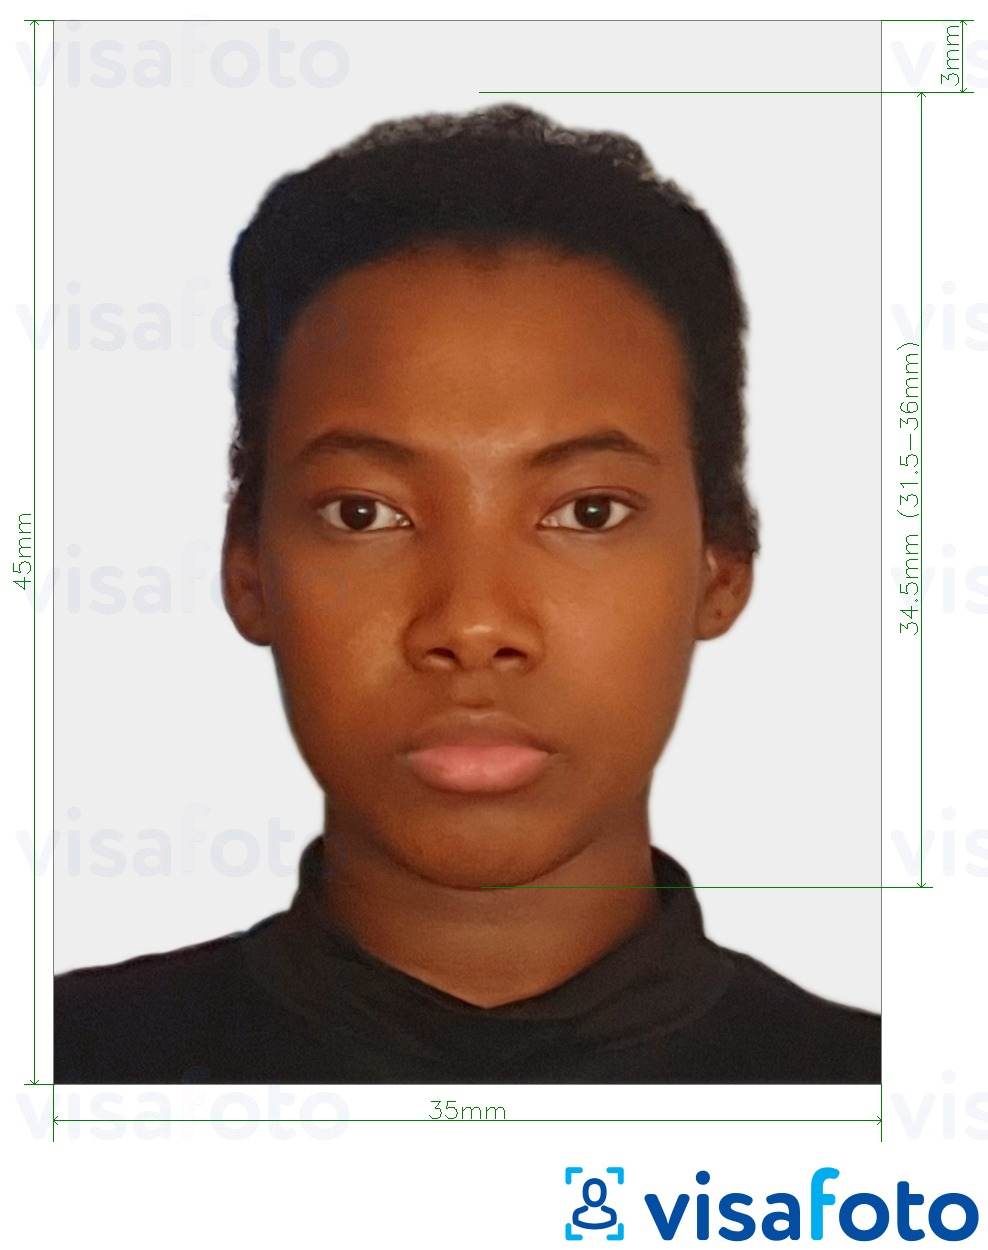 Example of photo for Zimbabwe visa 35x45 mm (3.5x4.5 cm) with exact size specification